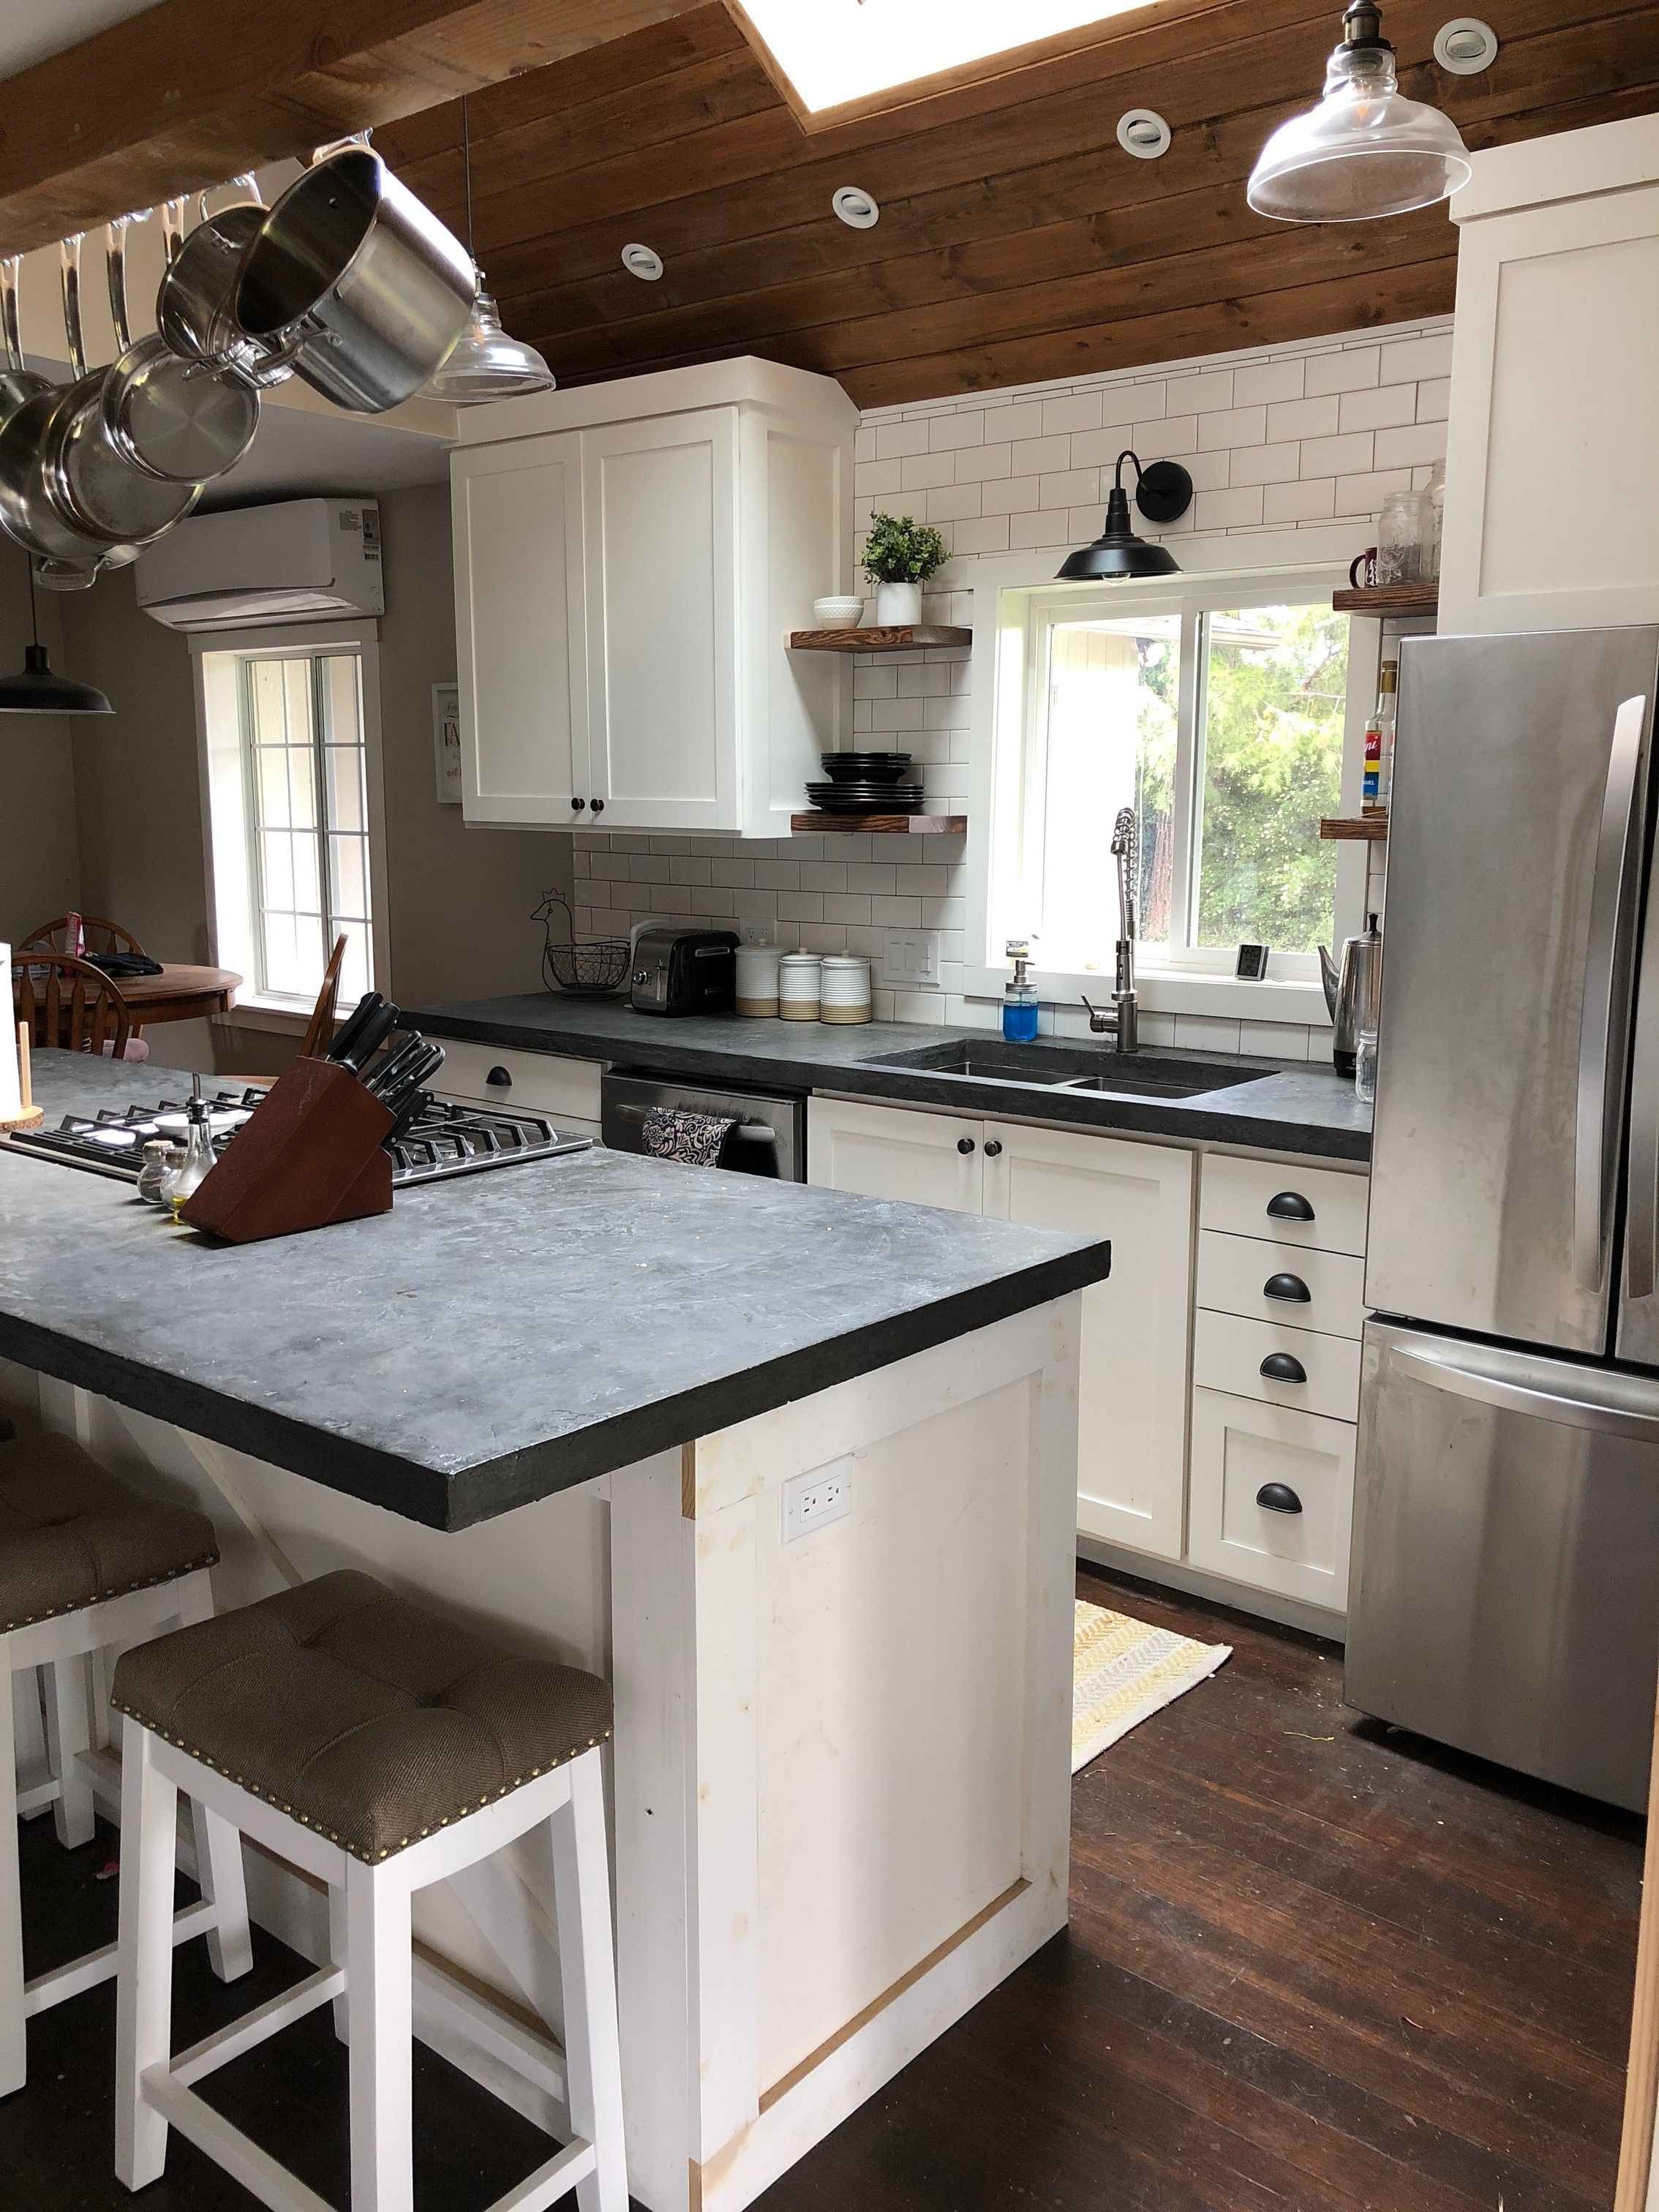 diy farmhouse kitchen with concrete countertops and vaulted ceiling concrete countertops on farmhouse kitchen decor countertop id=61478